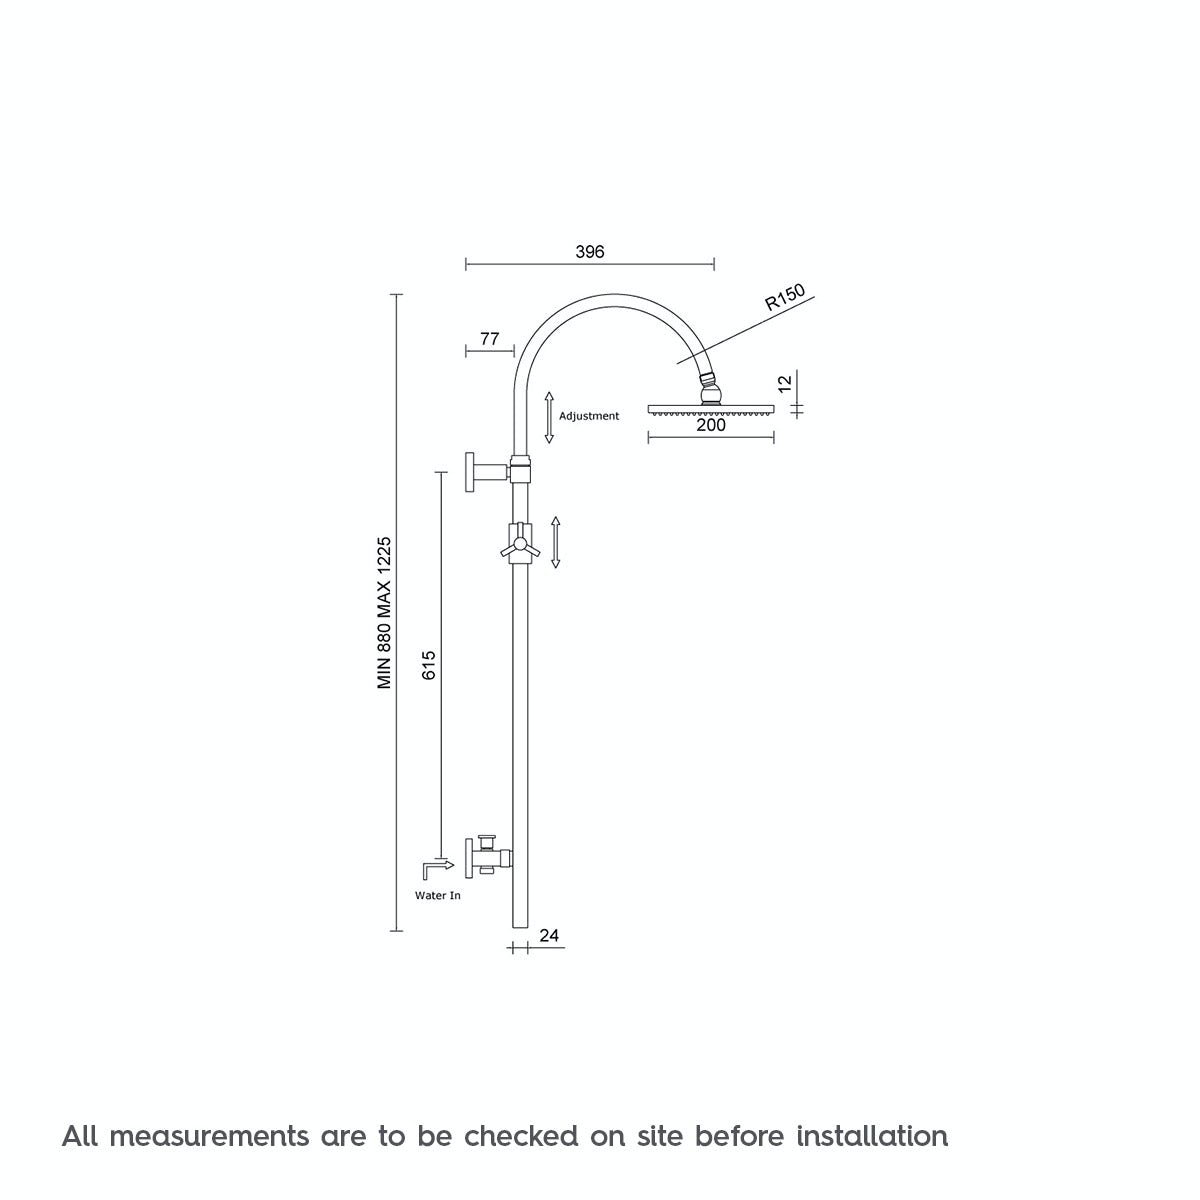 Dimensions for Mode Aria round shower riser kit